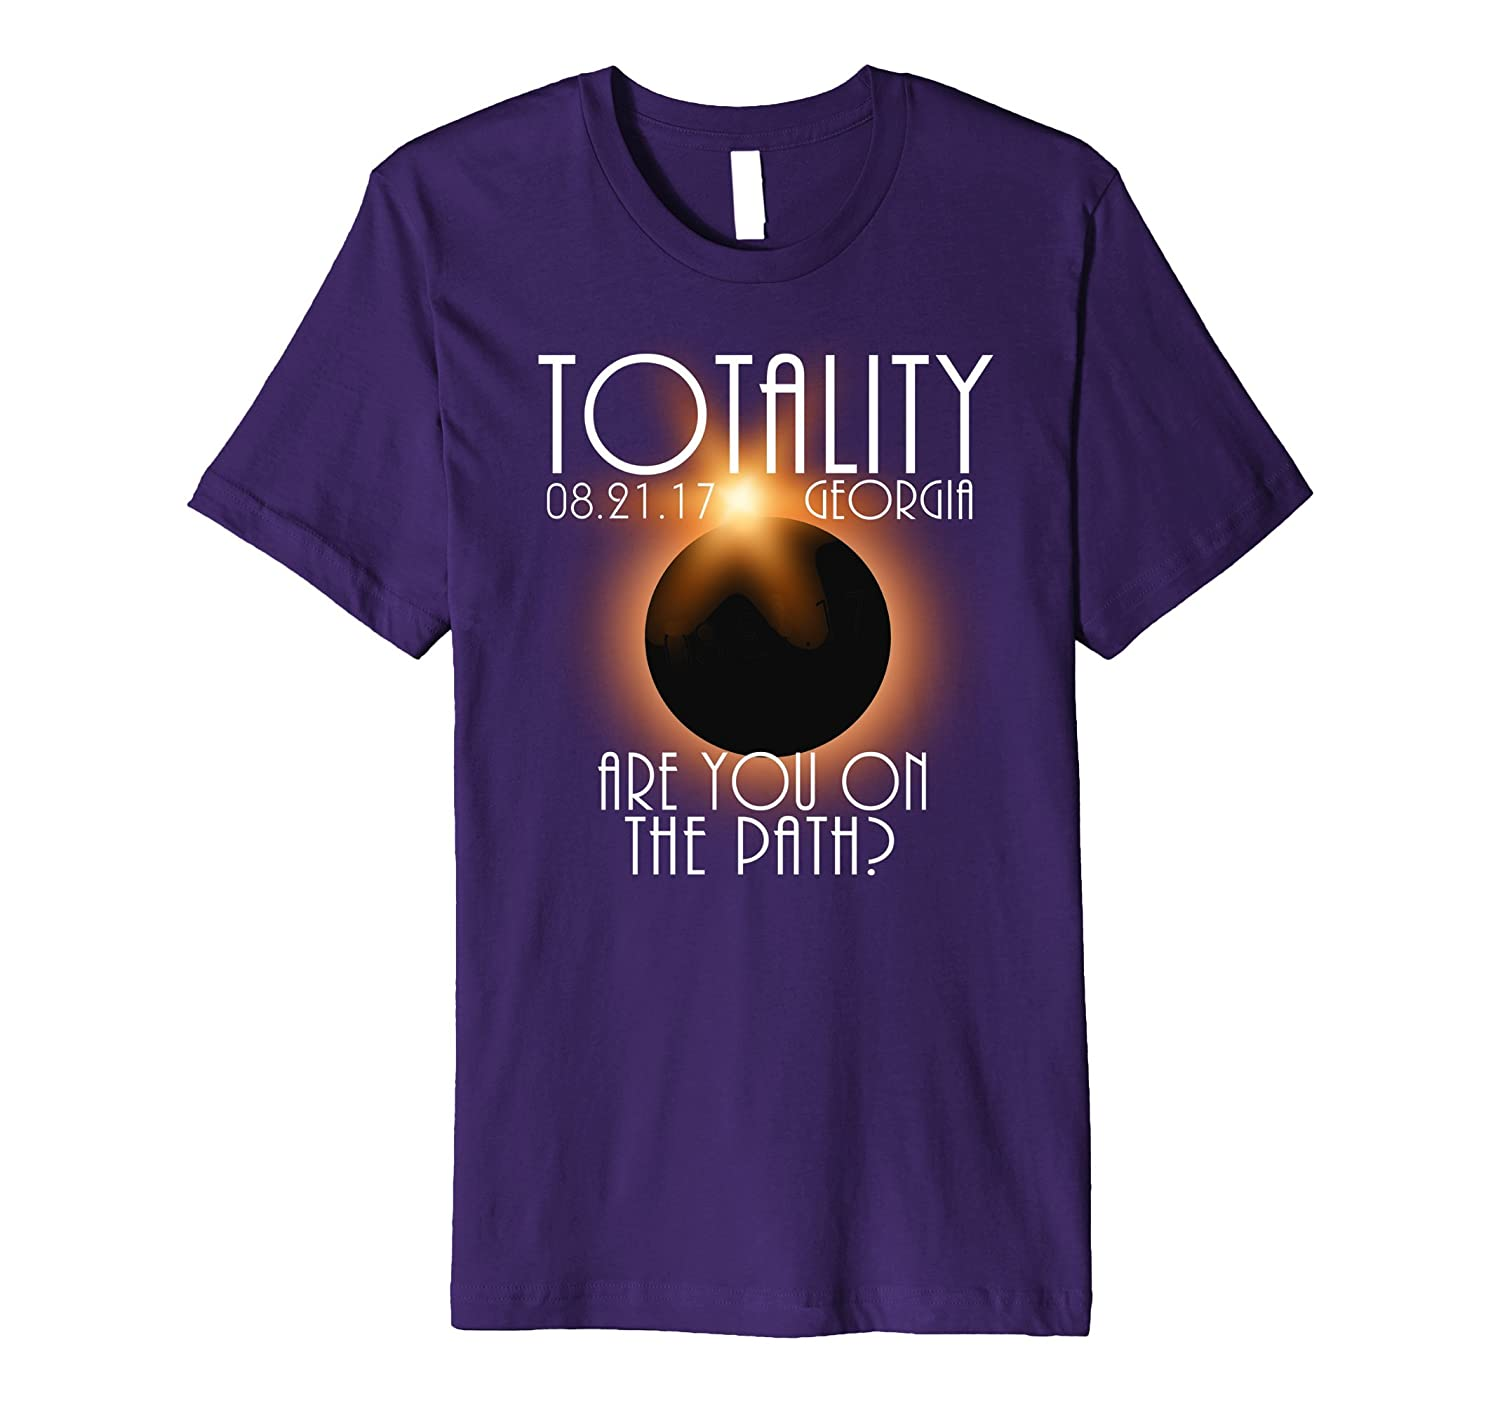 Path of Totality Shirt Georgia – Total Eclipse Shirt, Eclips